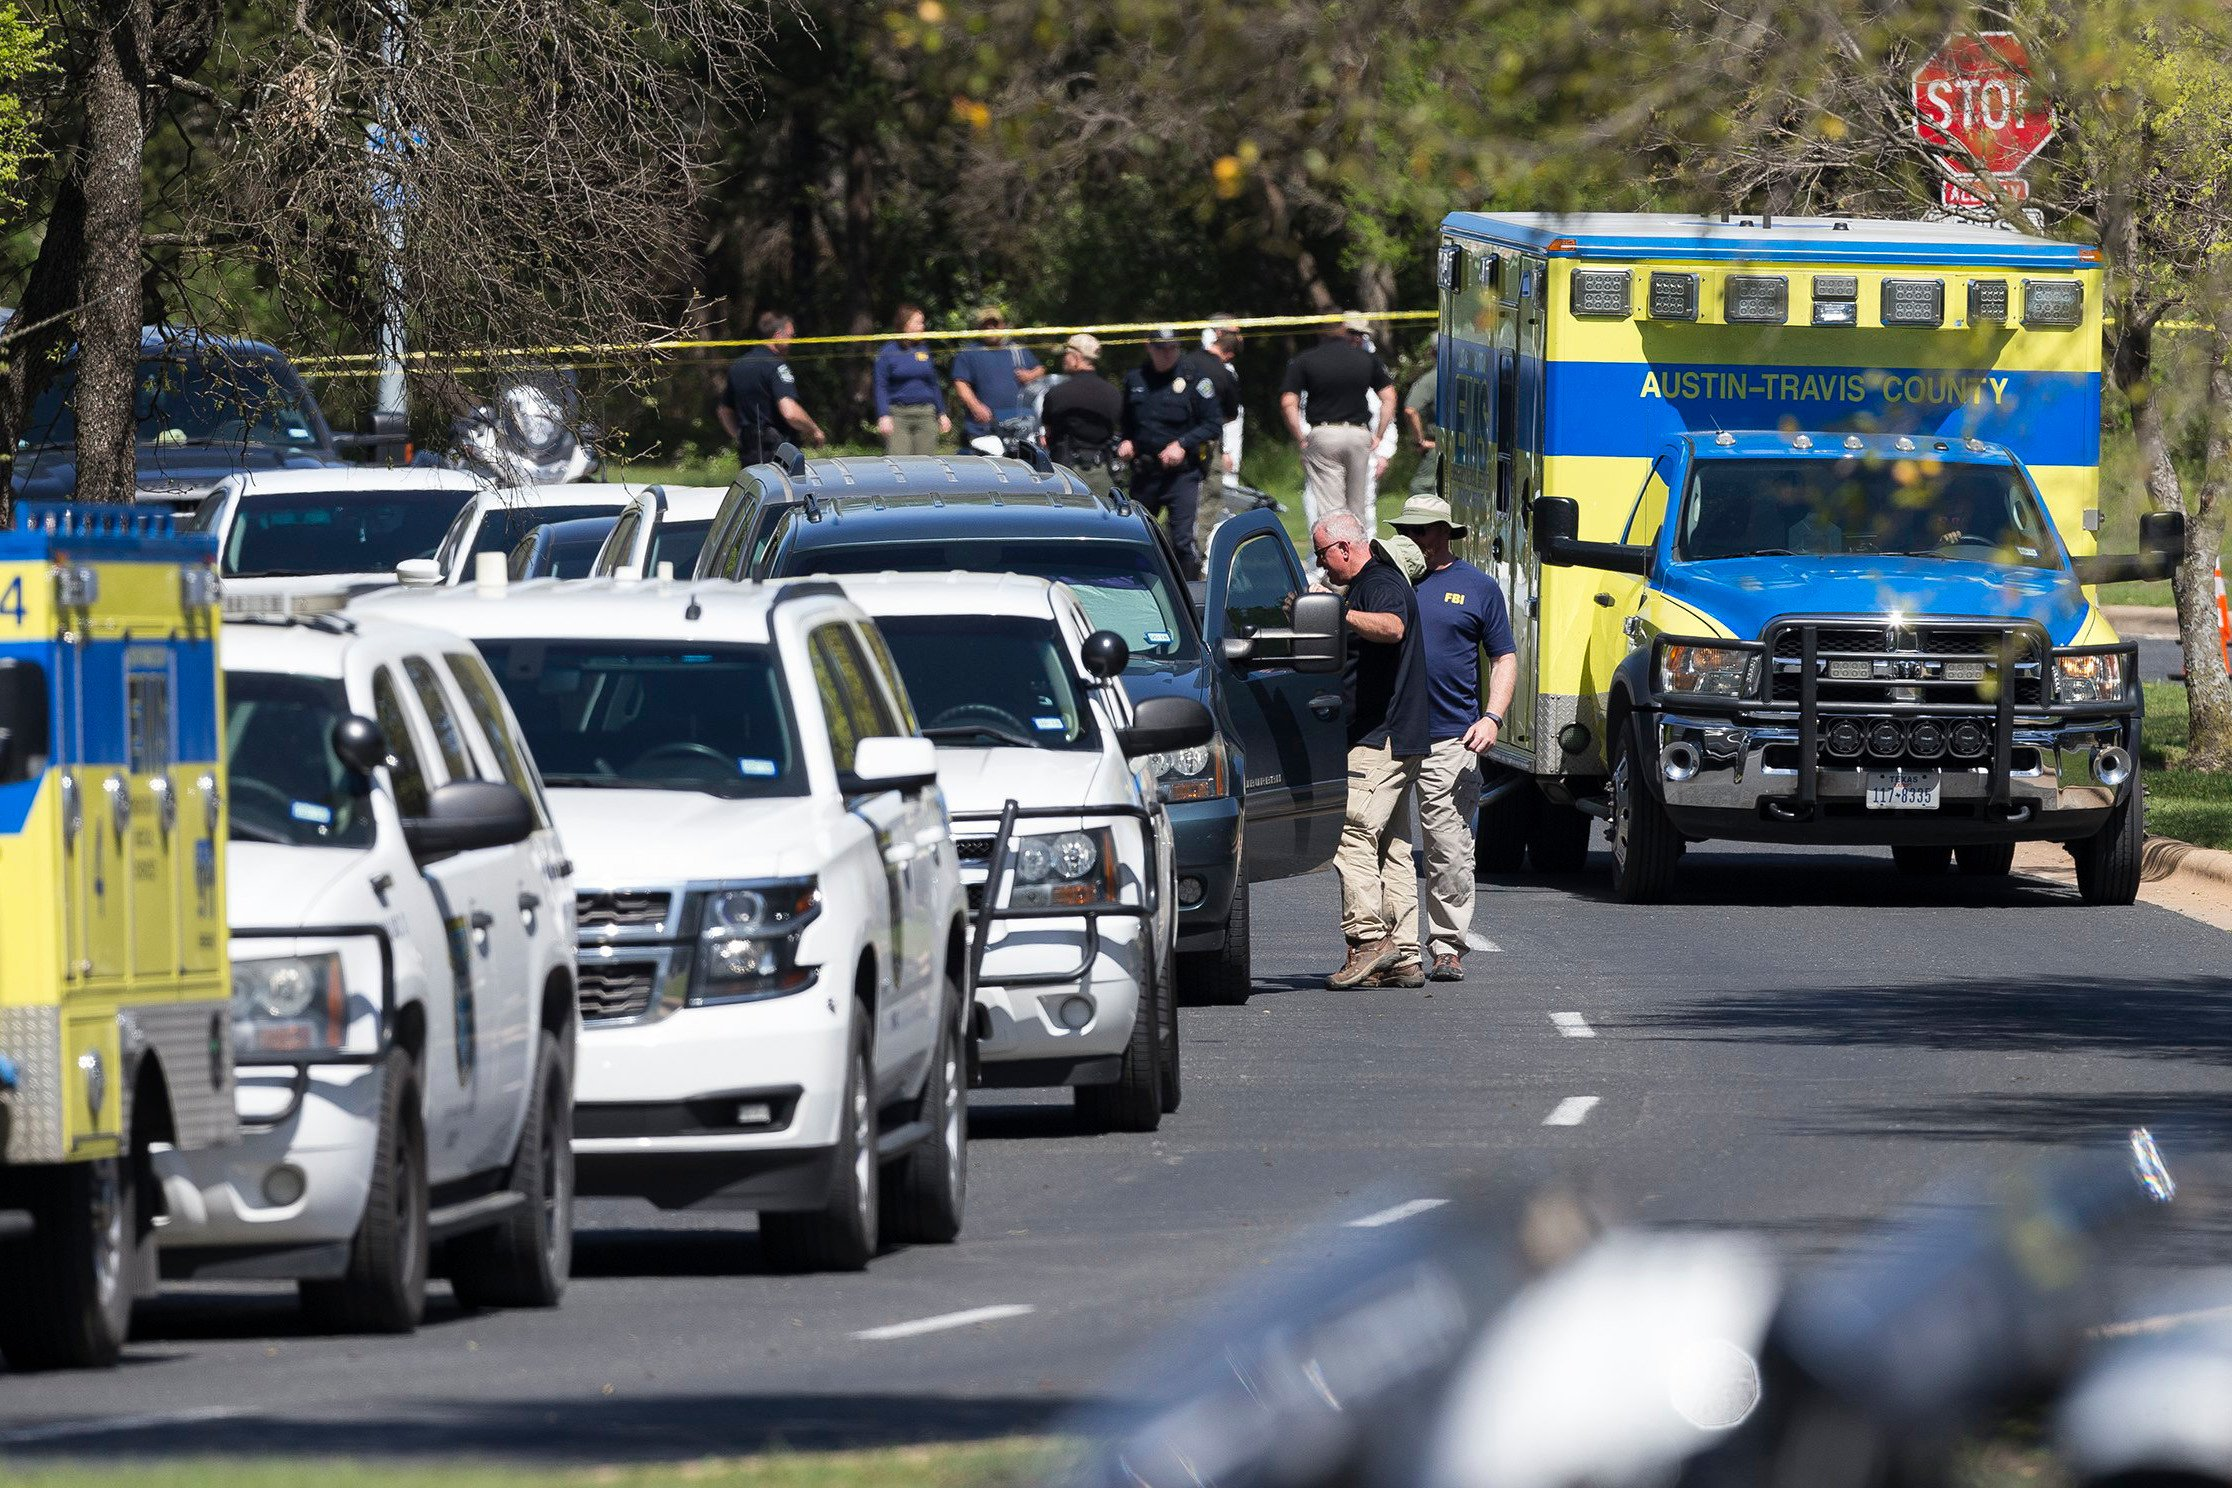 Black Caucus members call for action on Austin bombings